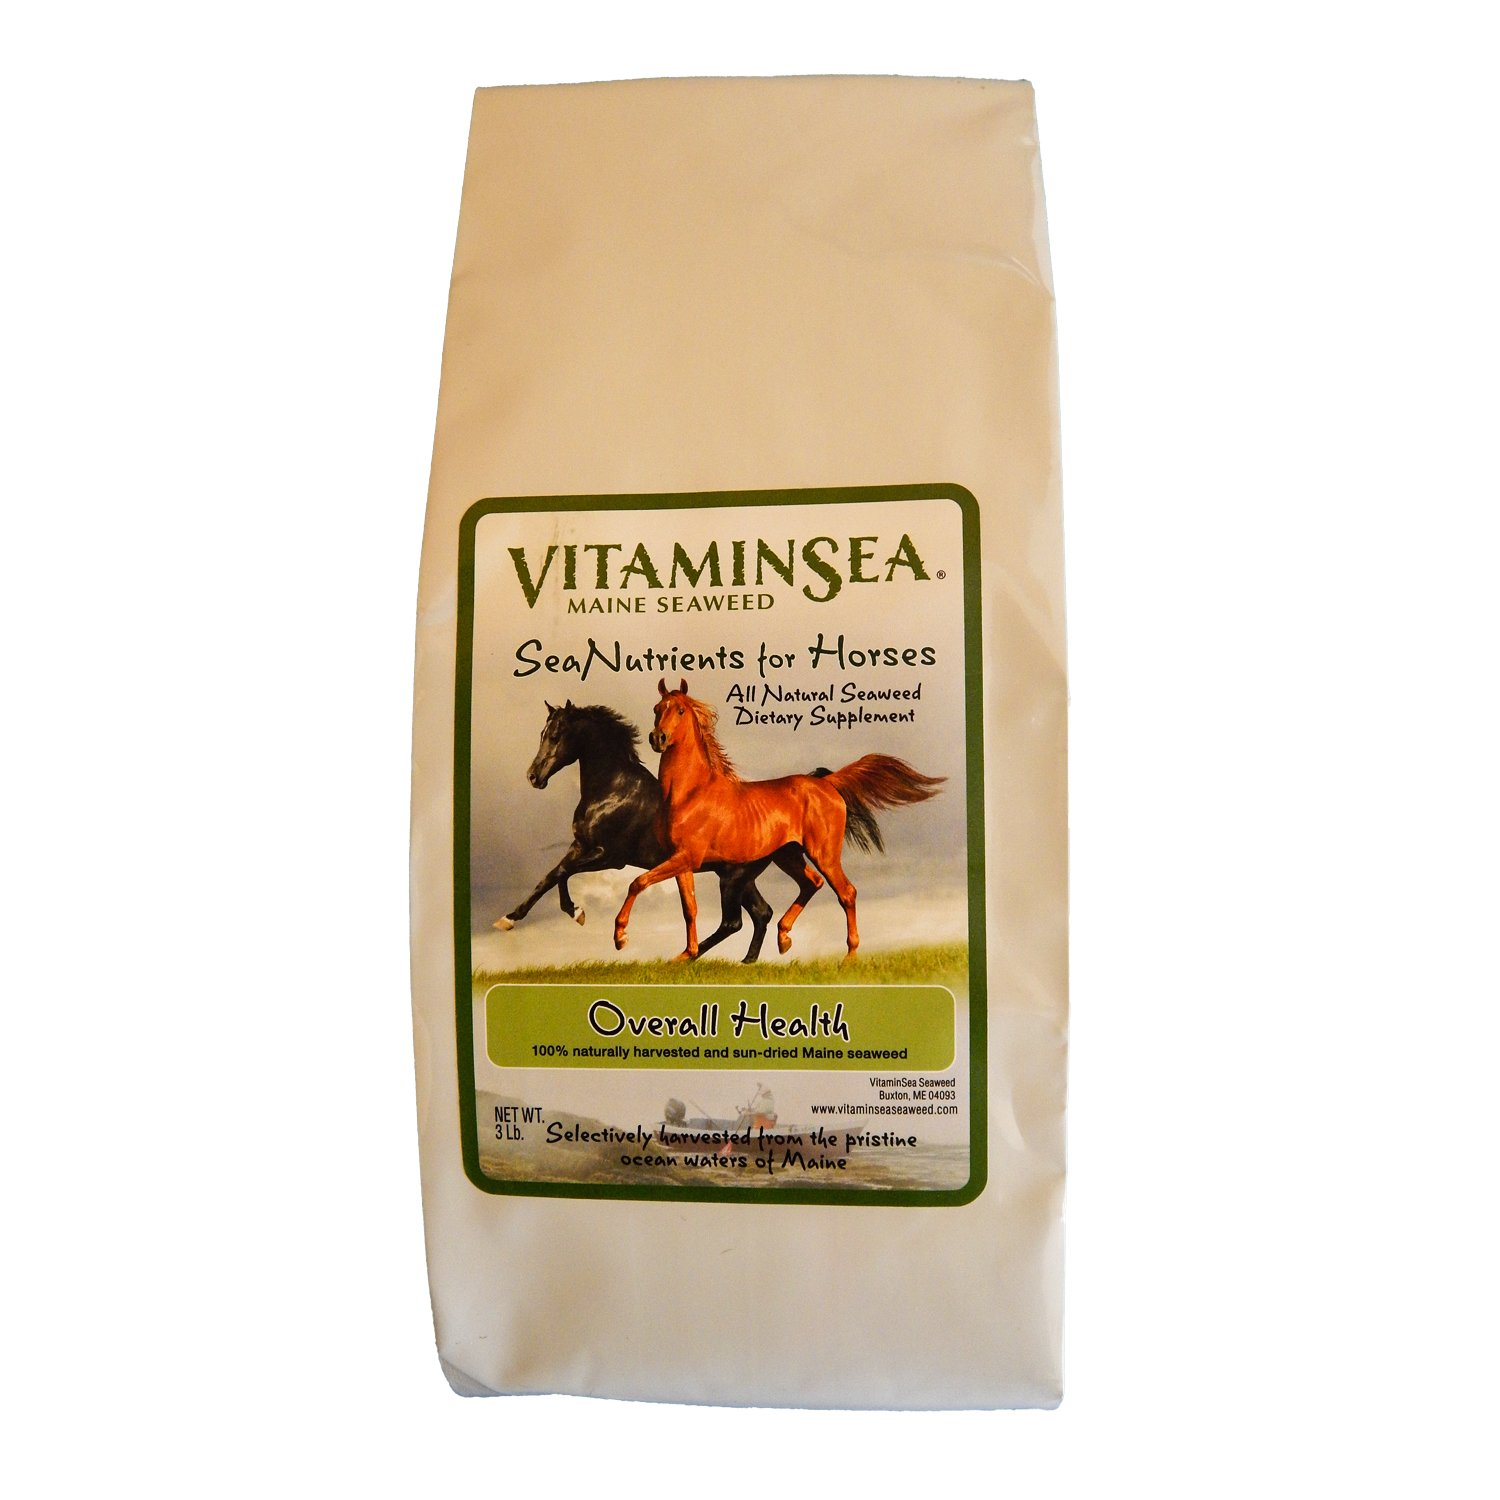 VITAMINSEA Horse Supplement Organic Kelp - Seaweed - 10 LB Overall Wellness - Vitamins Minerals Micro Nutrients & Maine Coast Sea Vegetables - Your Equine Health Atlantic Ocean Hand Harvested (HOW10)